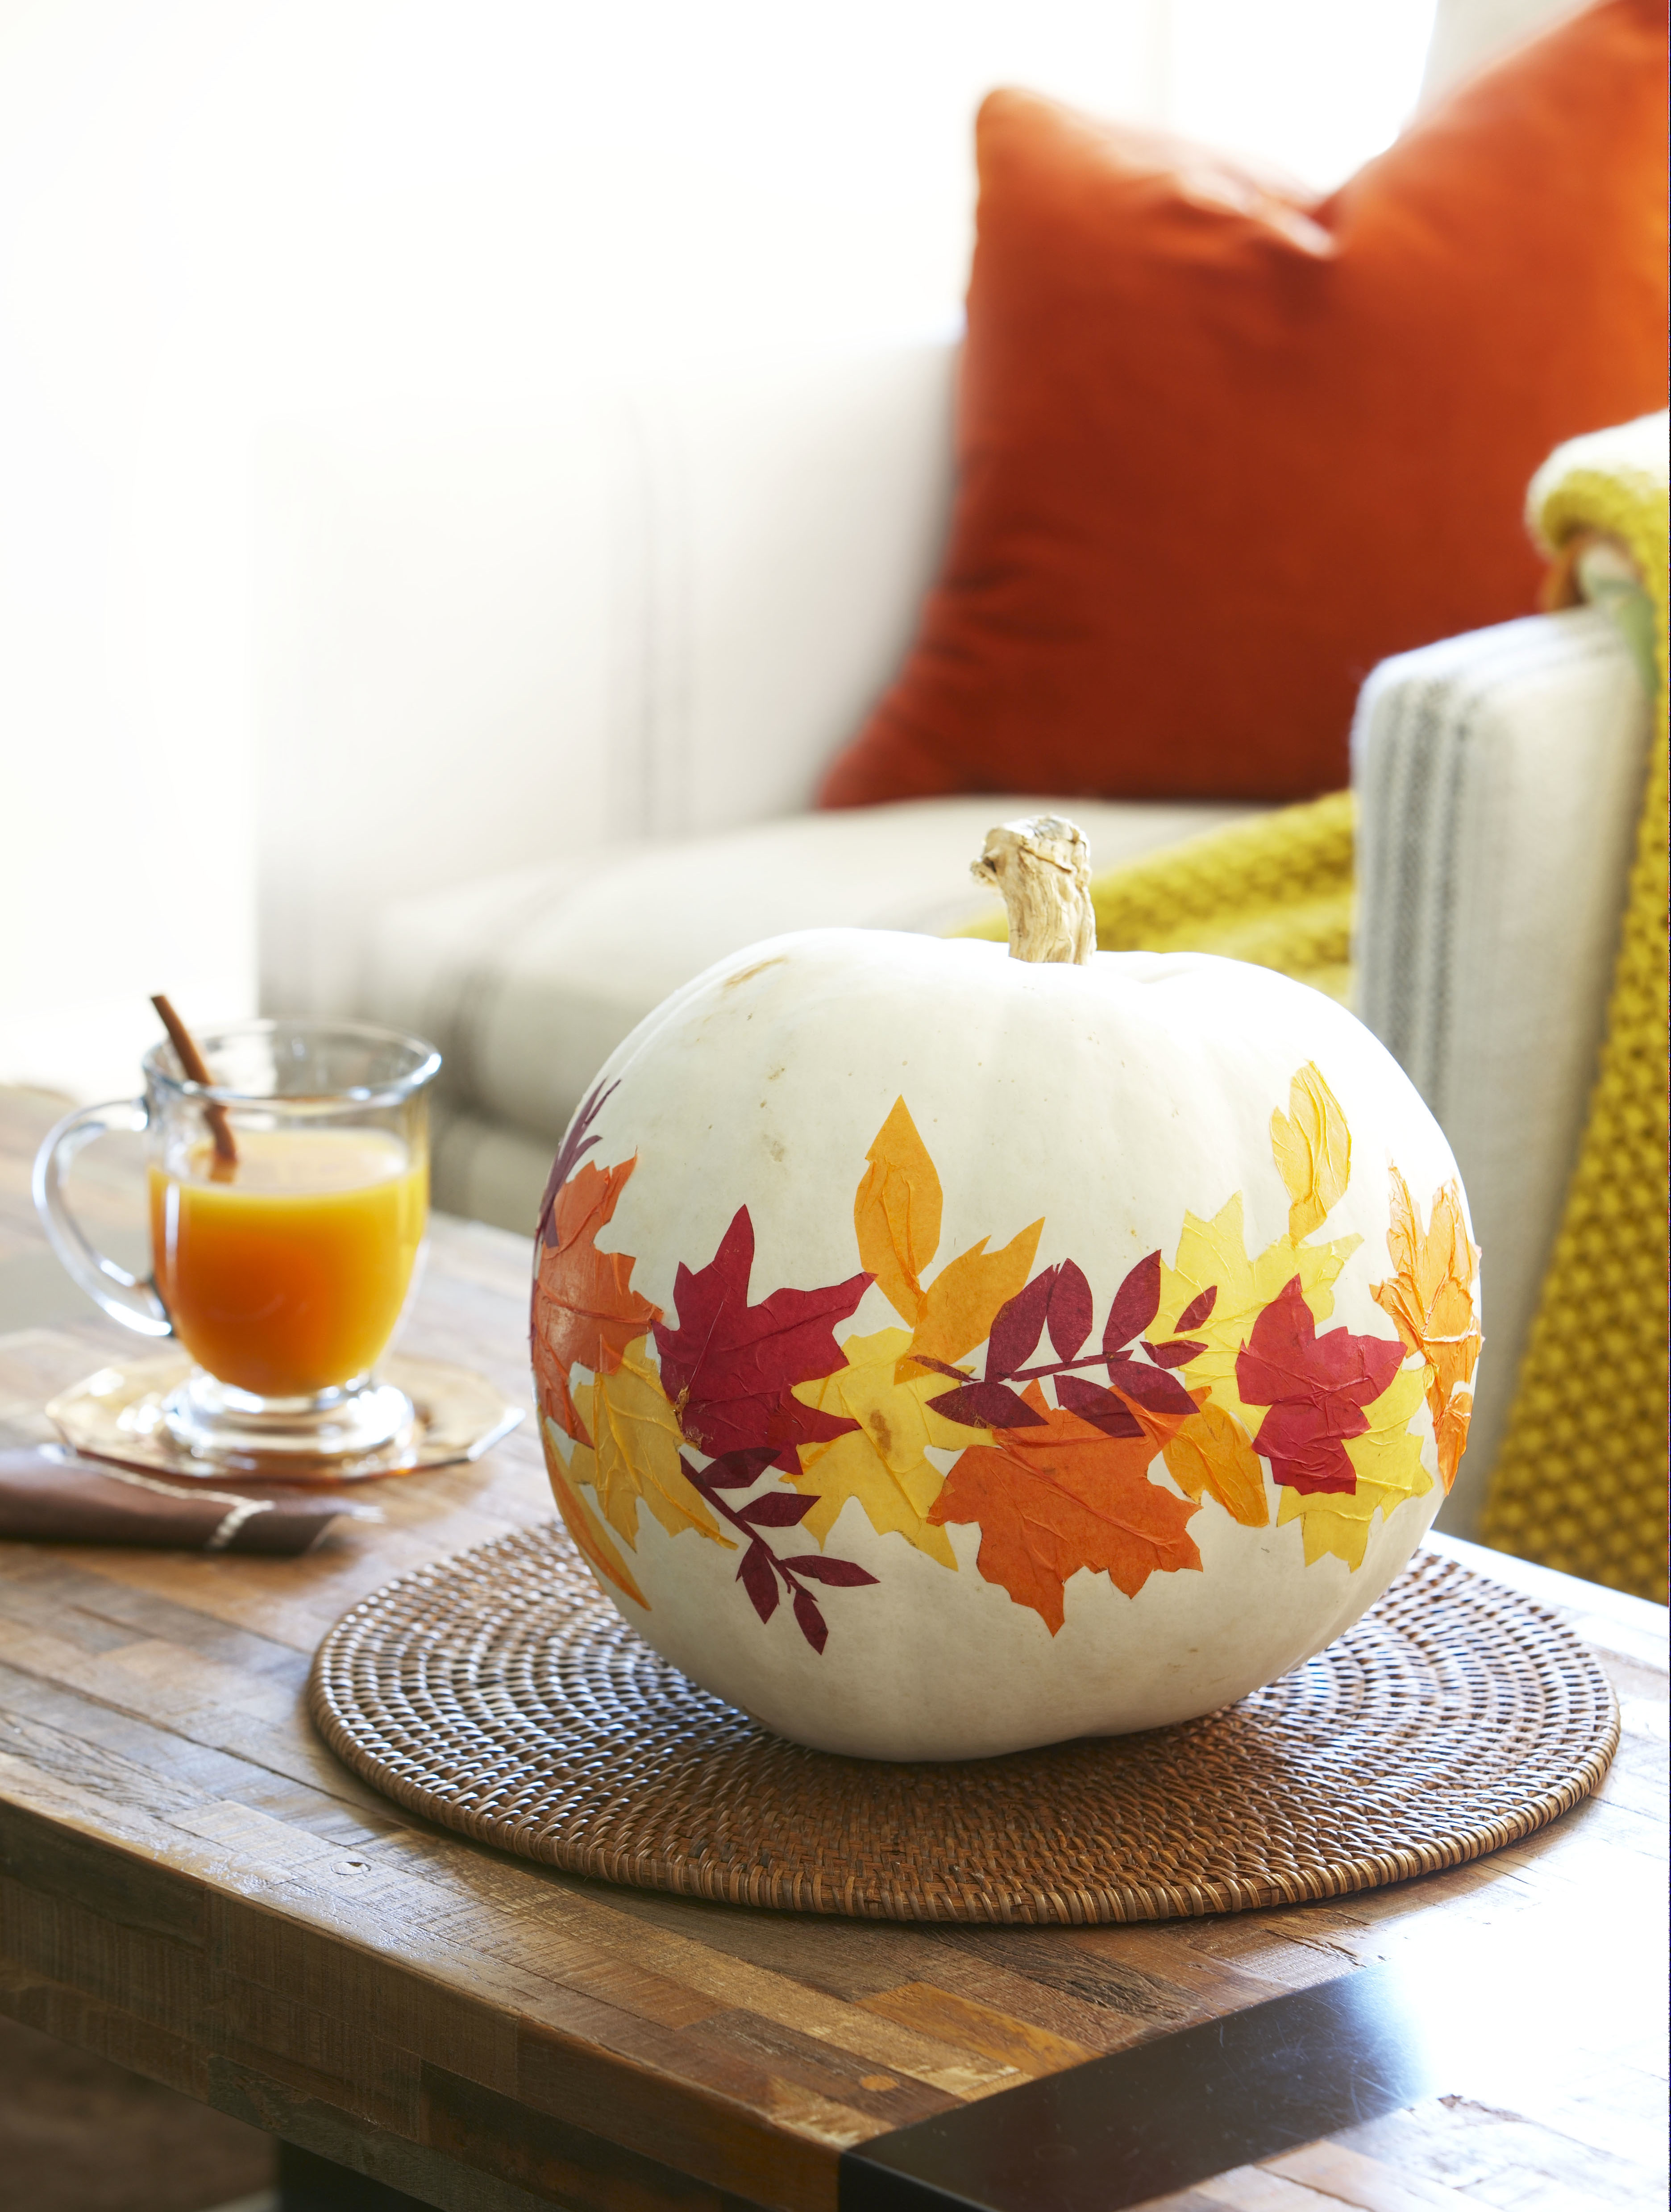 60 pumpkin designs we love for 2017 pumpkin decorating ideas - Pumpkin Halloween Ideas